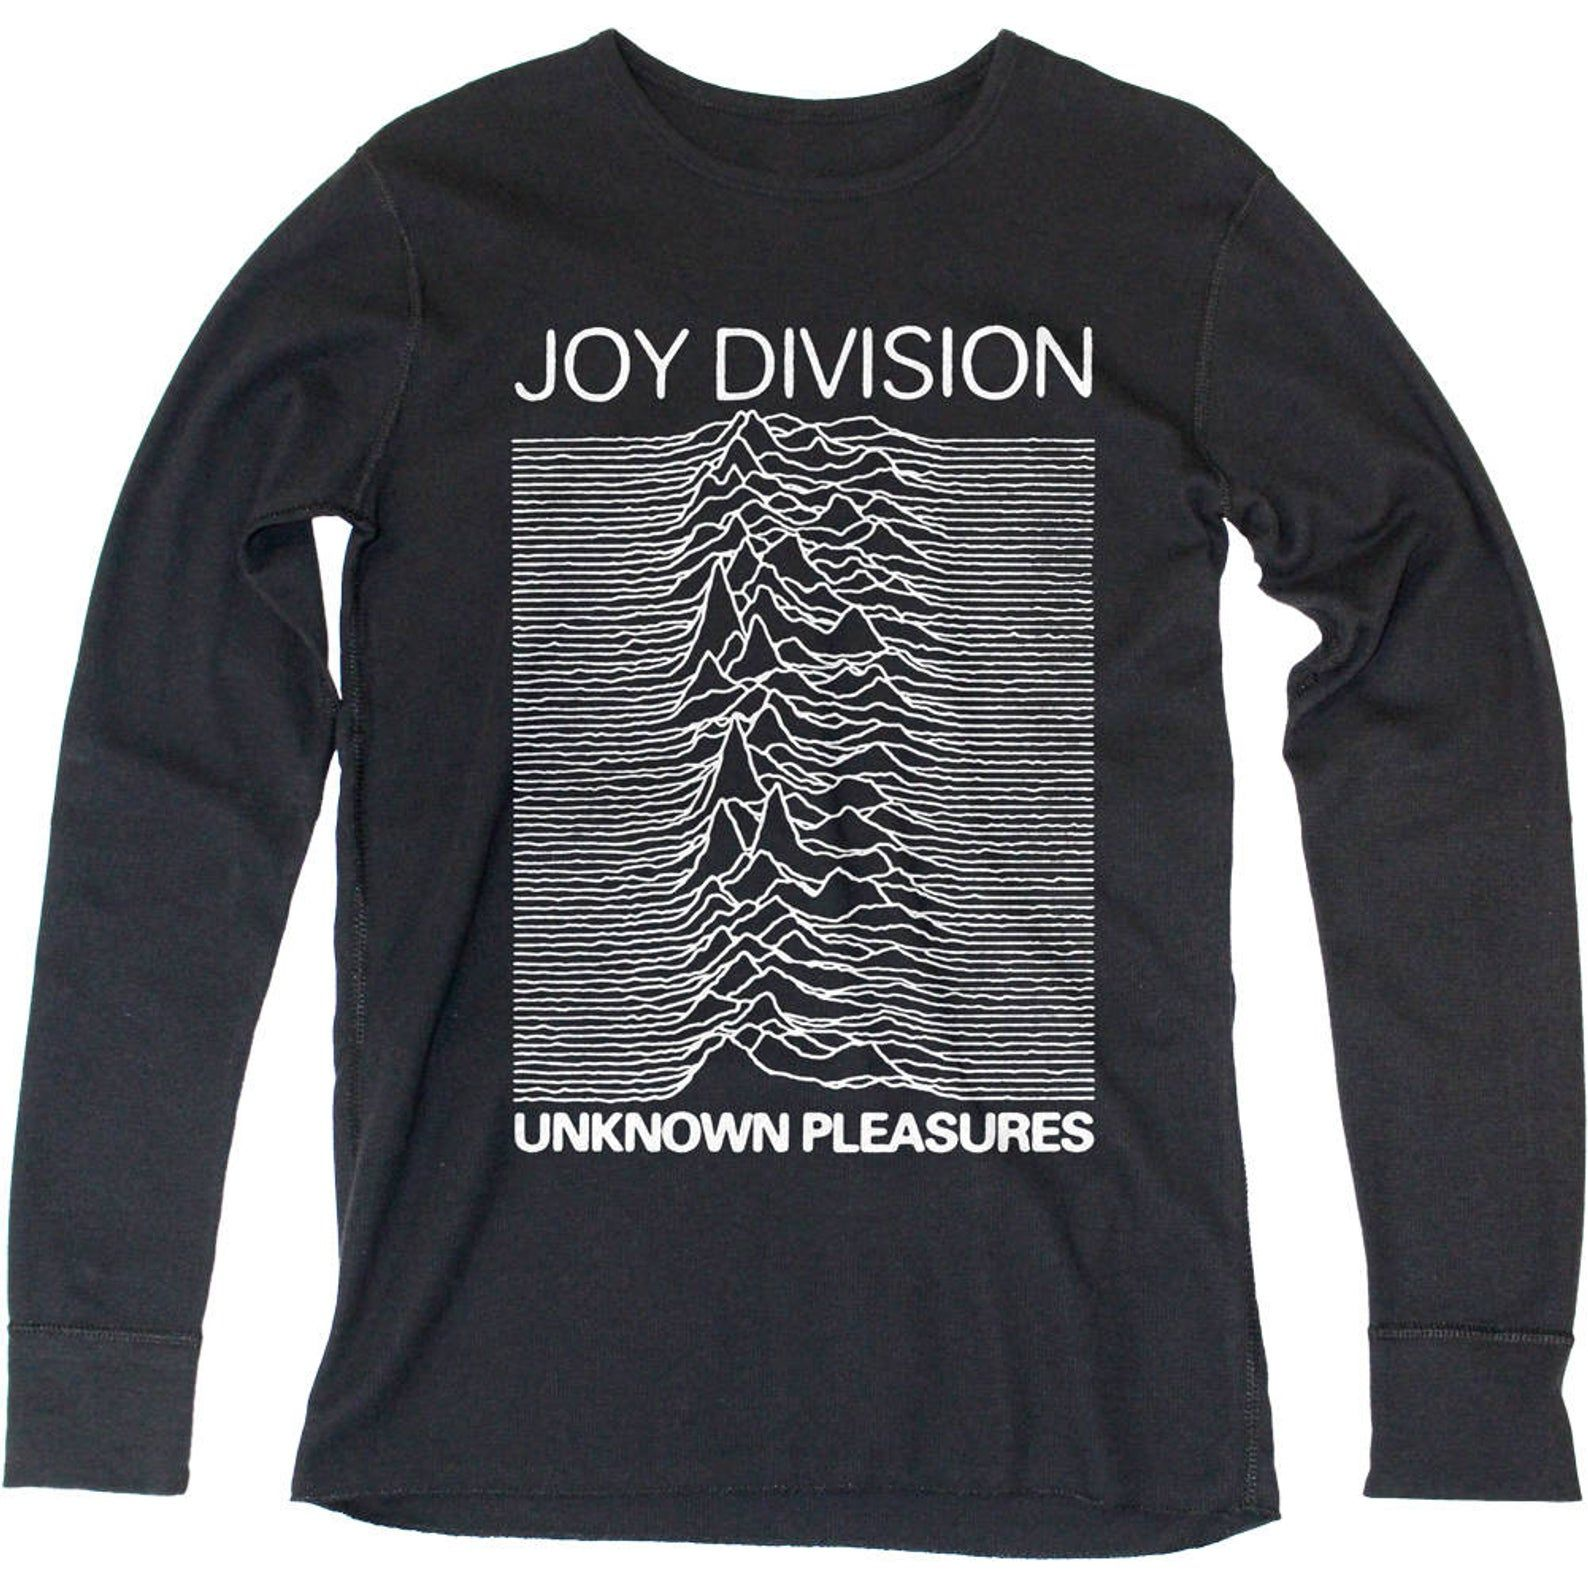 Joy Division Necklace Handmade Joy Division Unknown Pleasures unique gift